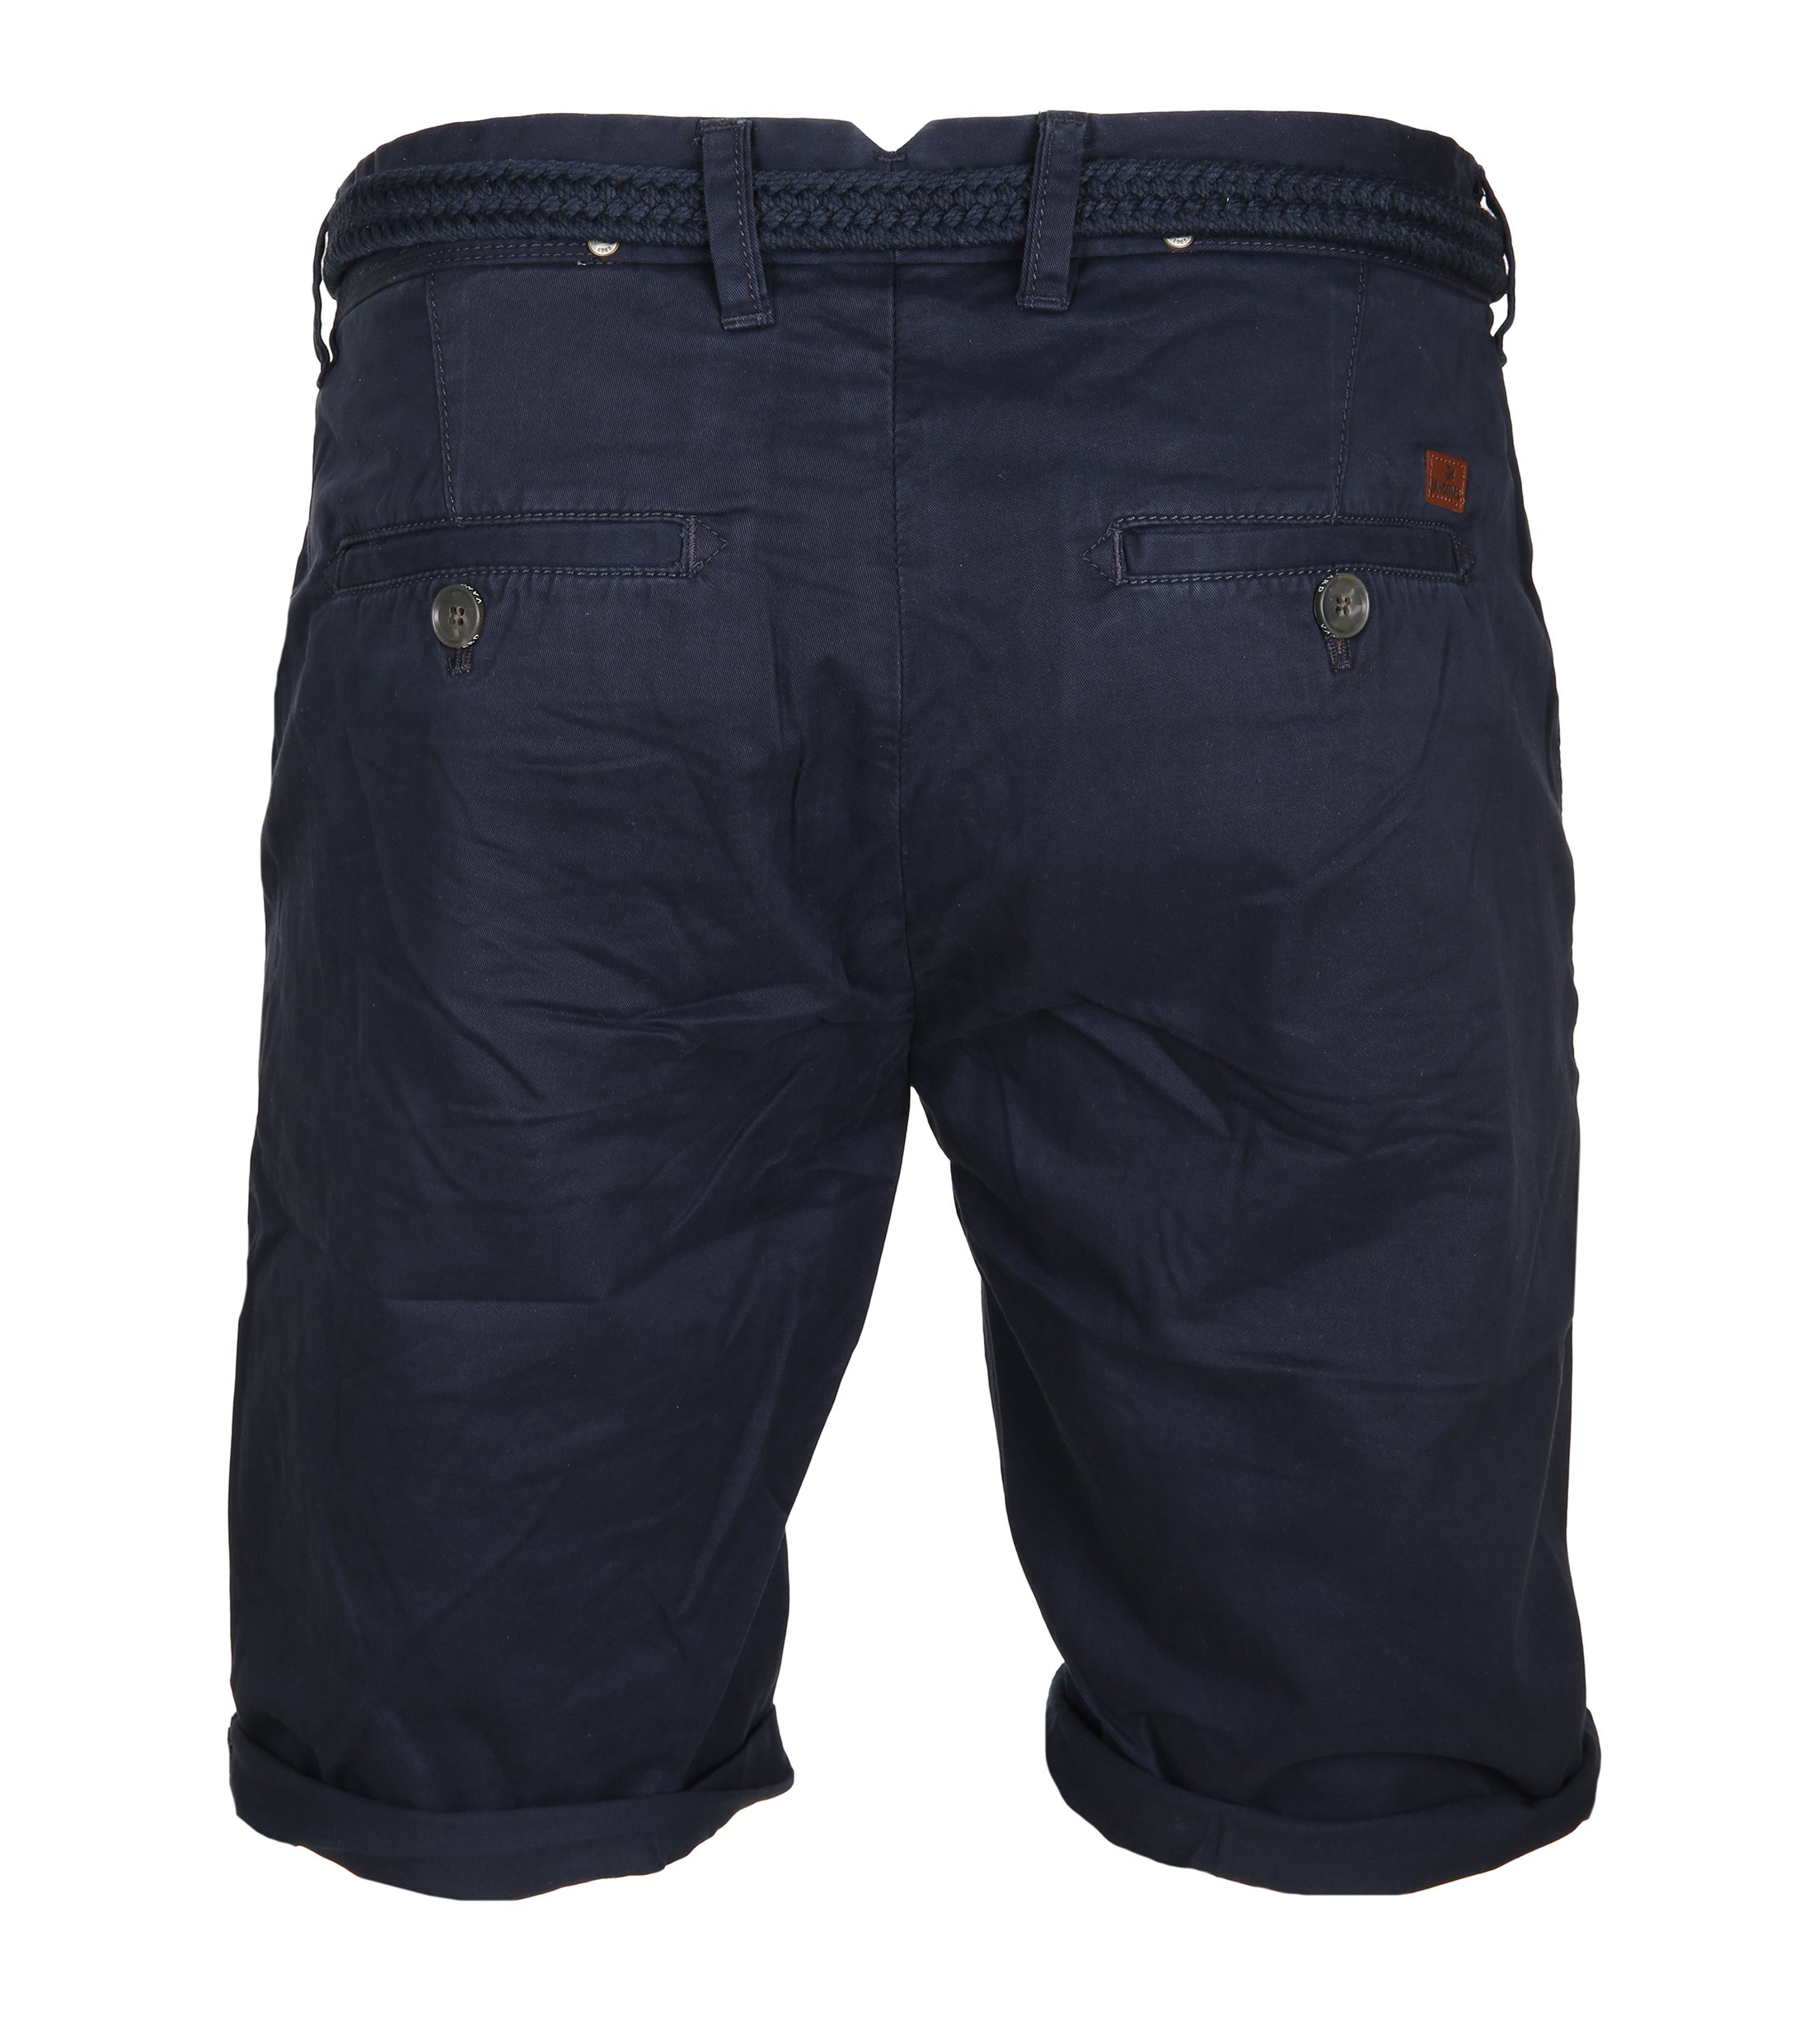 Vanguard Korte Broek Twill Navy foto 2